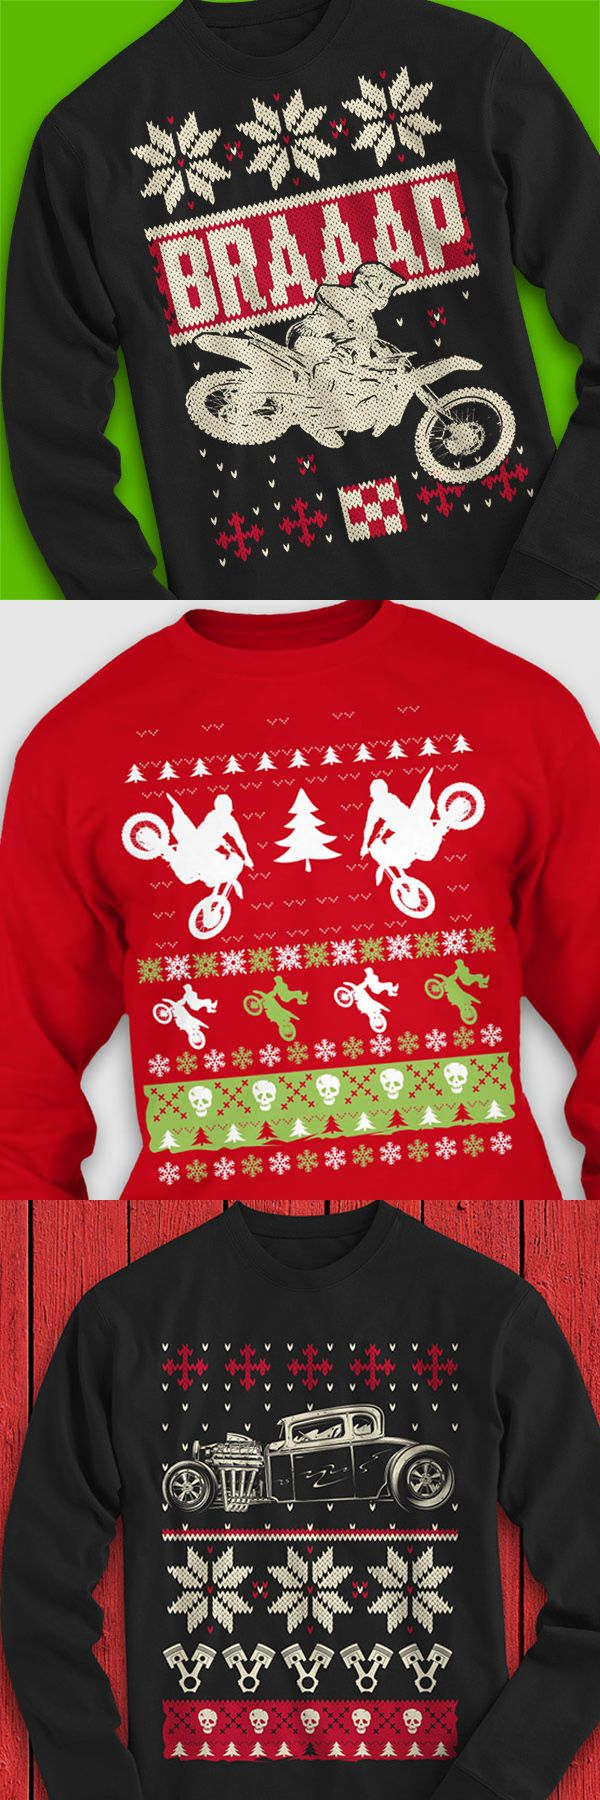 T shirt design quad cities - Ugly Christmas Shirts For Everyone Motorcycle Riders To Hot Rodders Quad Riders To Fishermen